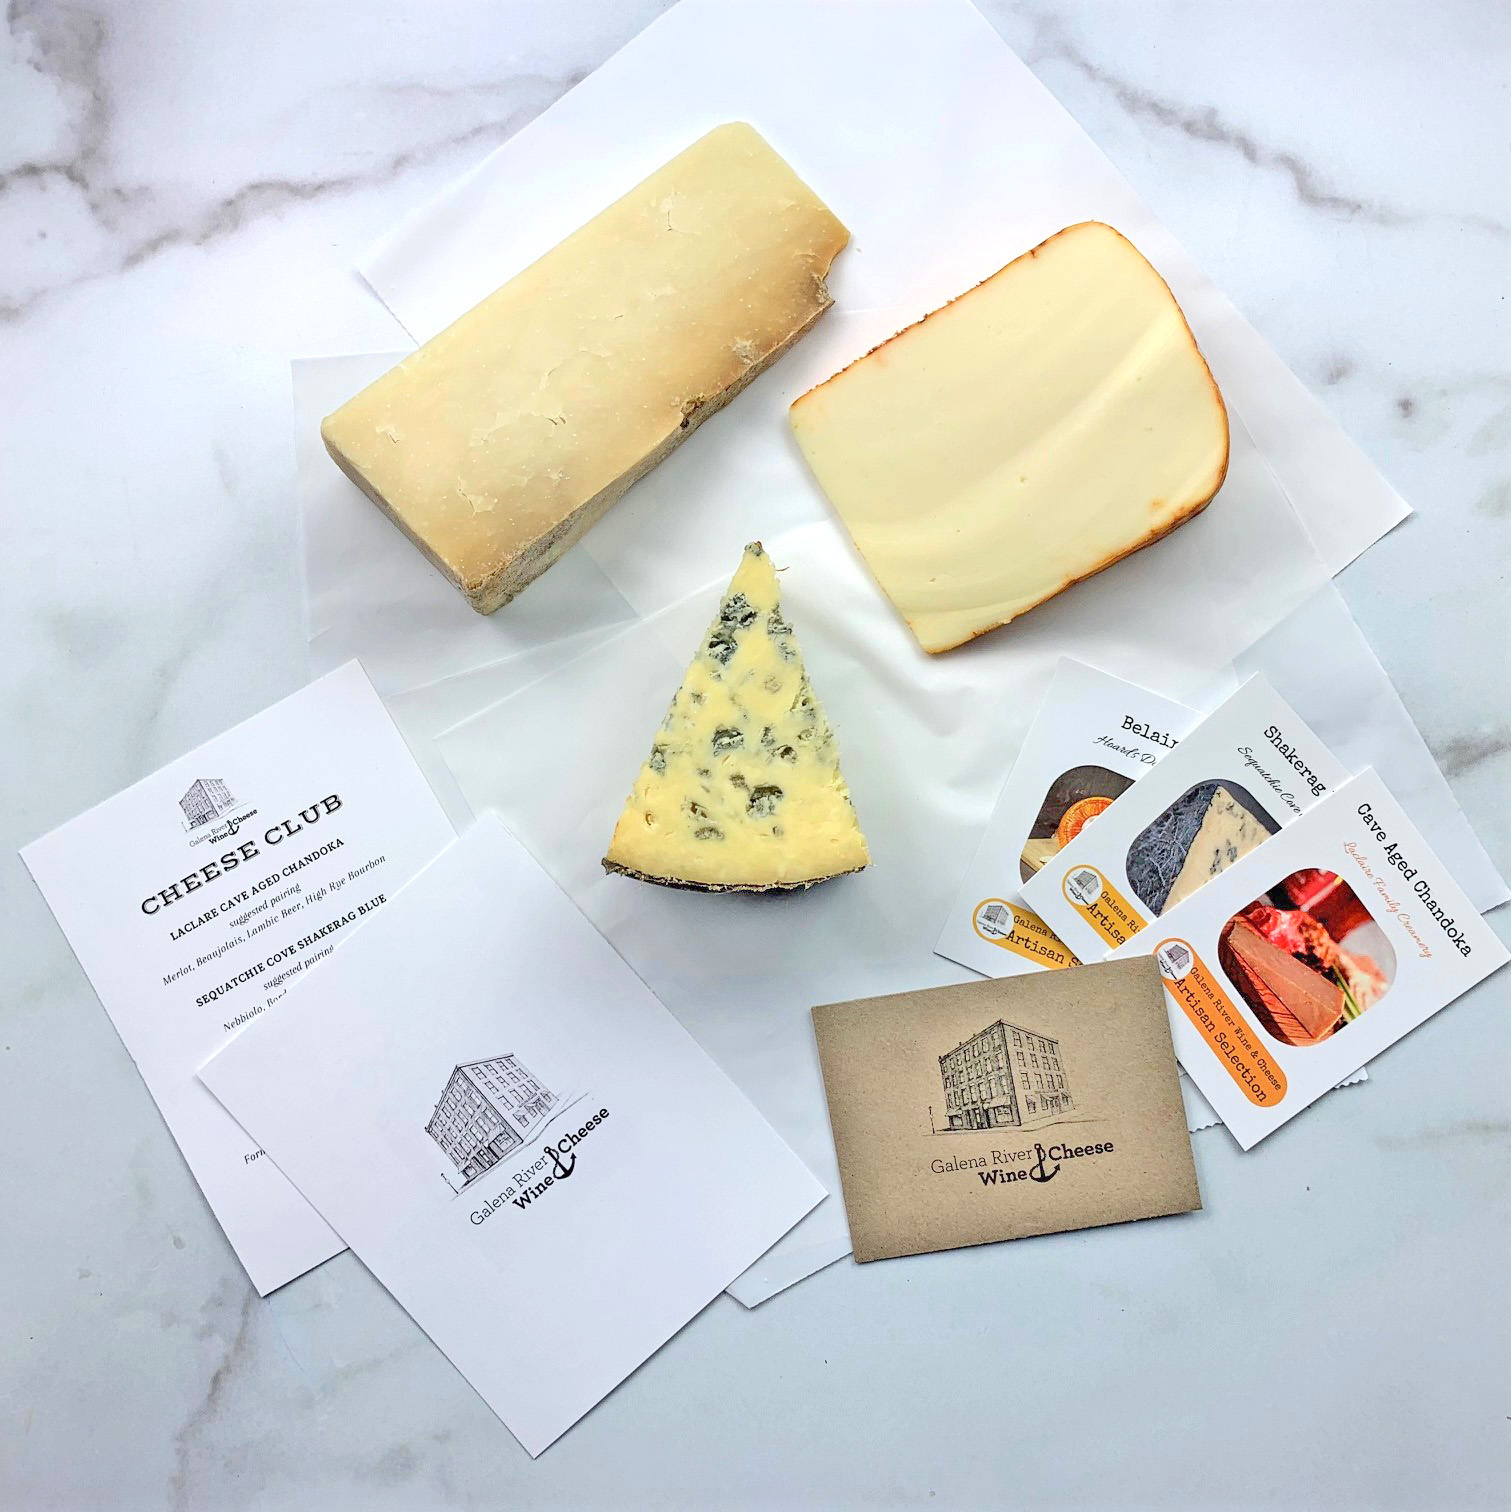 Cheese and informational cards from Galena River Wine & Cheese's monthly Cheese Club box